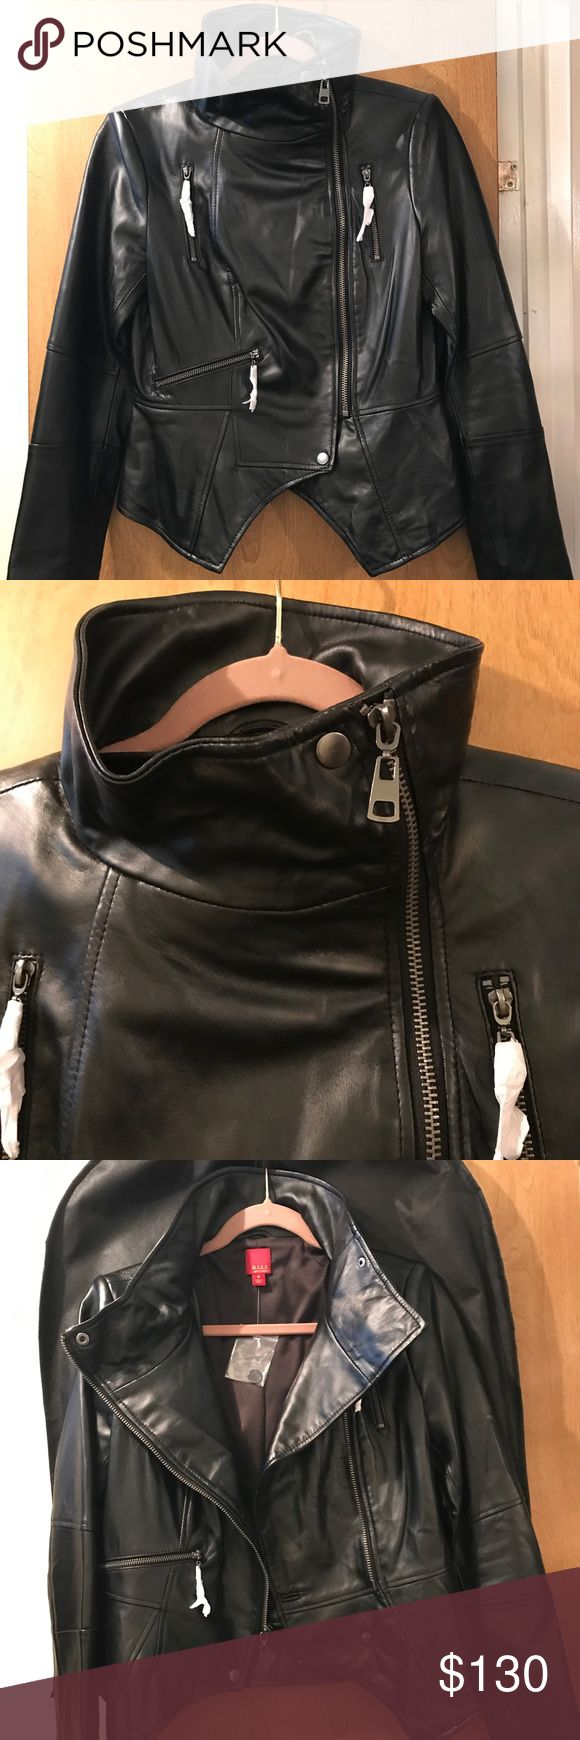 """G.I.L.I. Leather Motorcycle Jacket NEW Brand New G.I.L.I. Leather Motorcycle Jacket in Black nickeltone hardware Sz 6. From Qvc-item number A256717. Super chic, on trend yet classic. Some info QVC: Slim fit; cut to contour lines of the body. The seam at the waist flatters & defines your shape,designed to be worn comfortably over a tank/shell.If you prefer to wear with a sweater size up. Length: 23-1/8"""" to 24-3/8"""" Content: 100% leather;lining 96% polyester/4% spandex. Comes with Dust bag and…"""